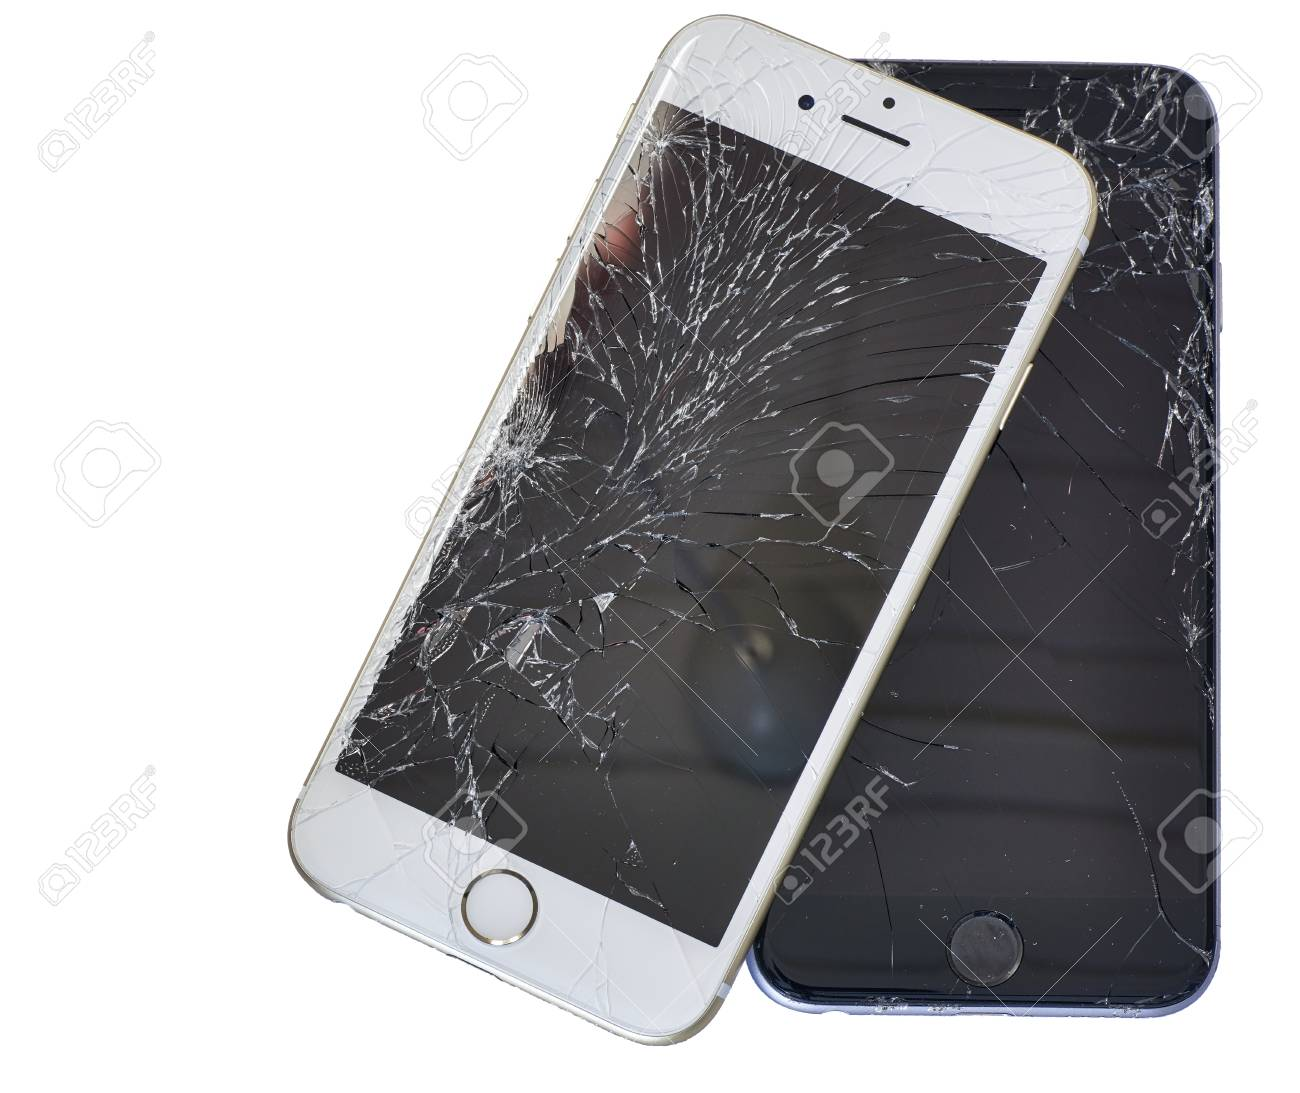 cheap for discount fcd3b 2c854 Trondheim, Norway - December 26 2015: Two iPhone 6 With Cracked..